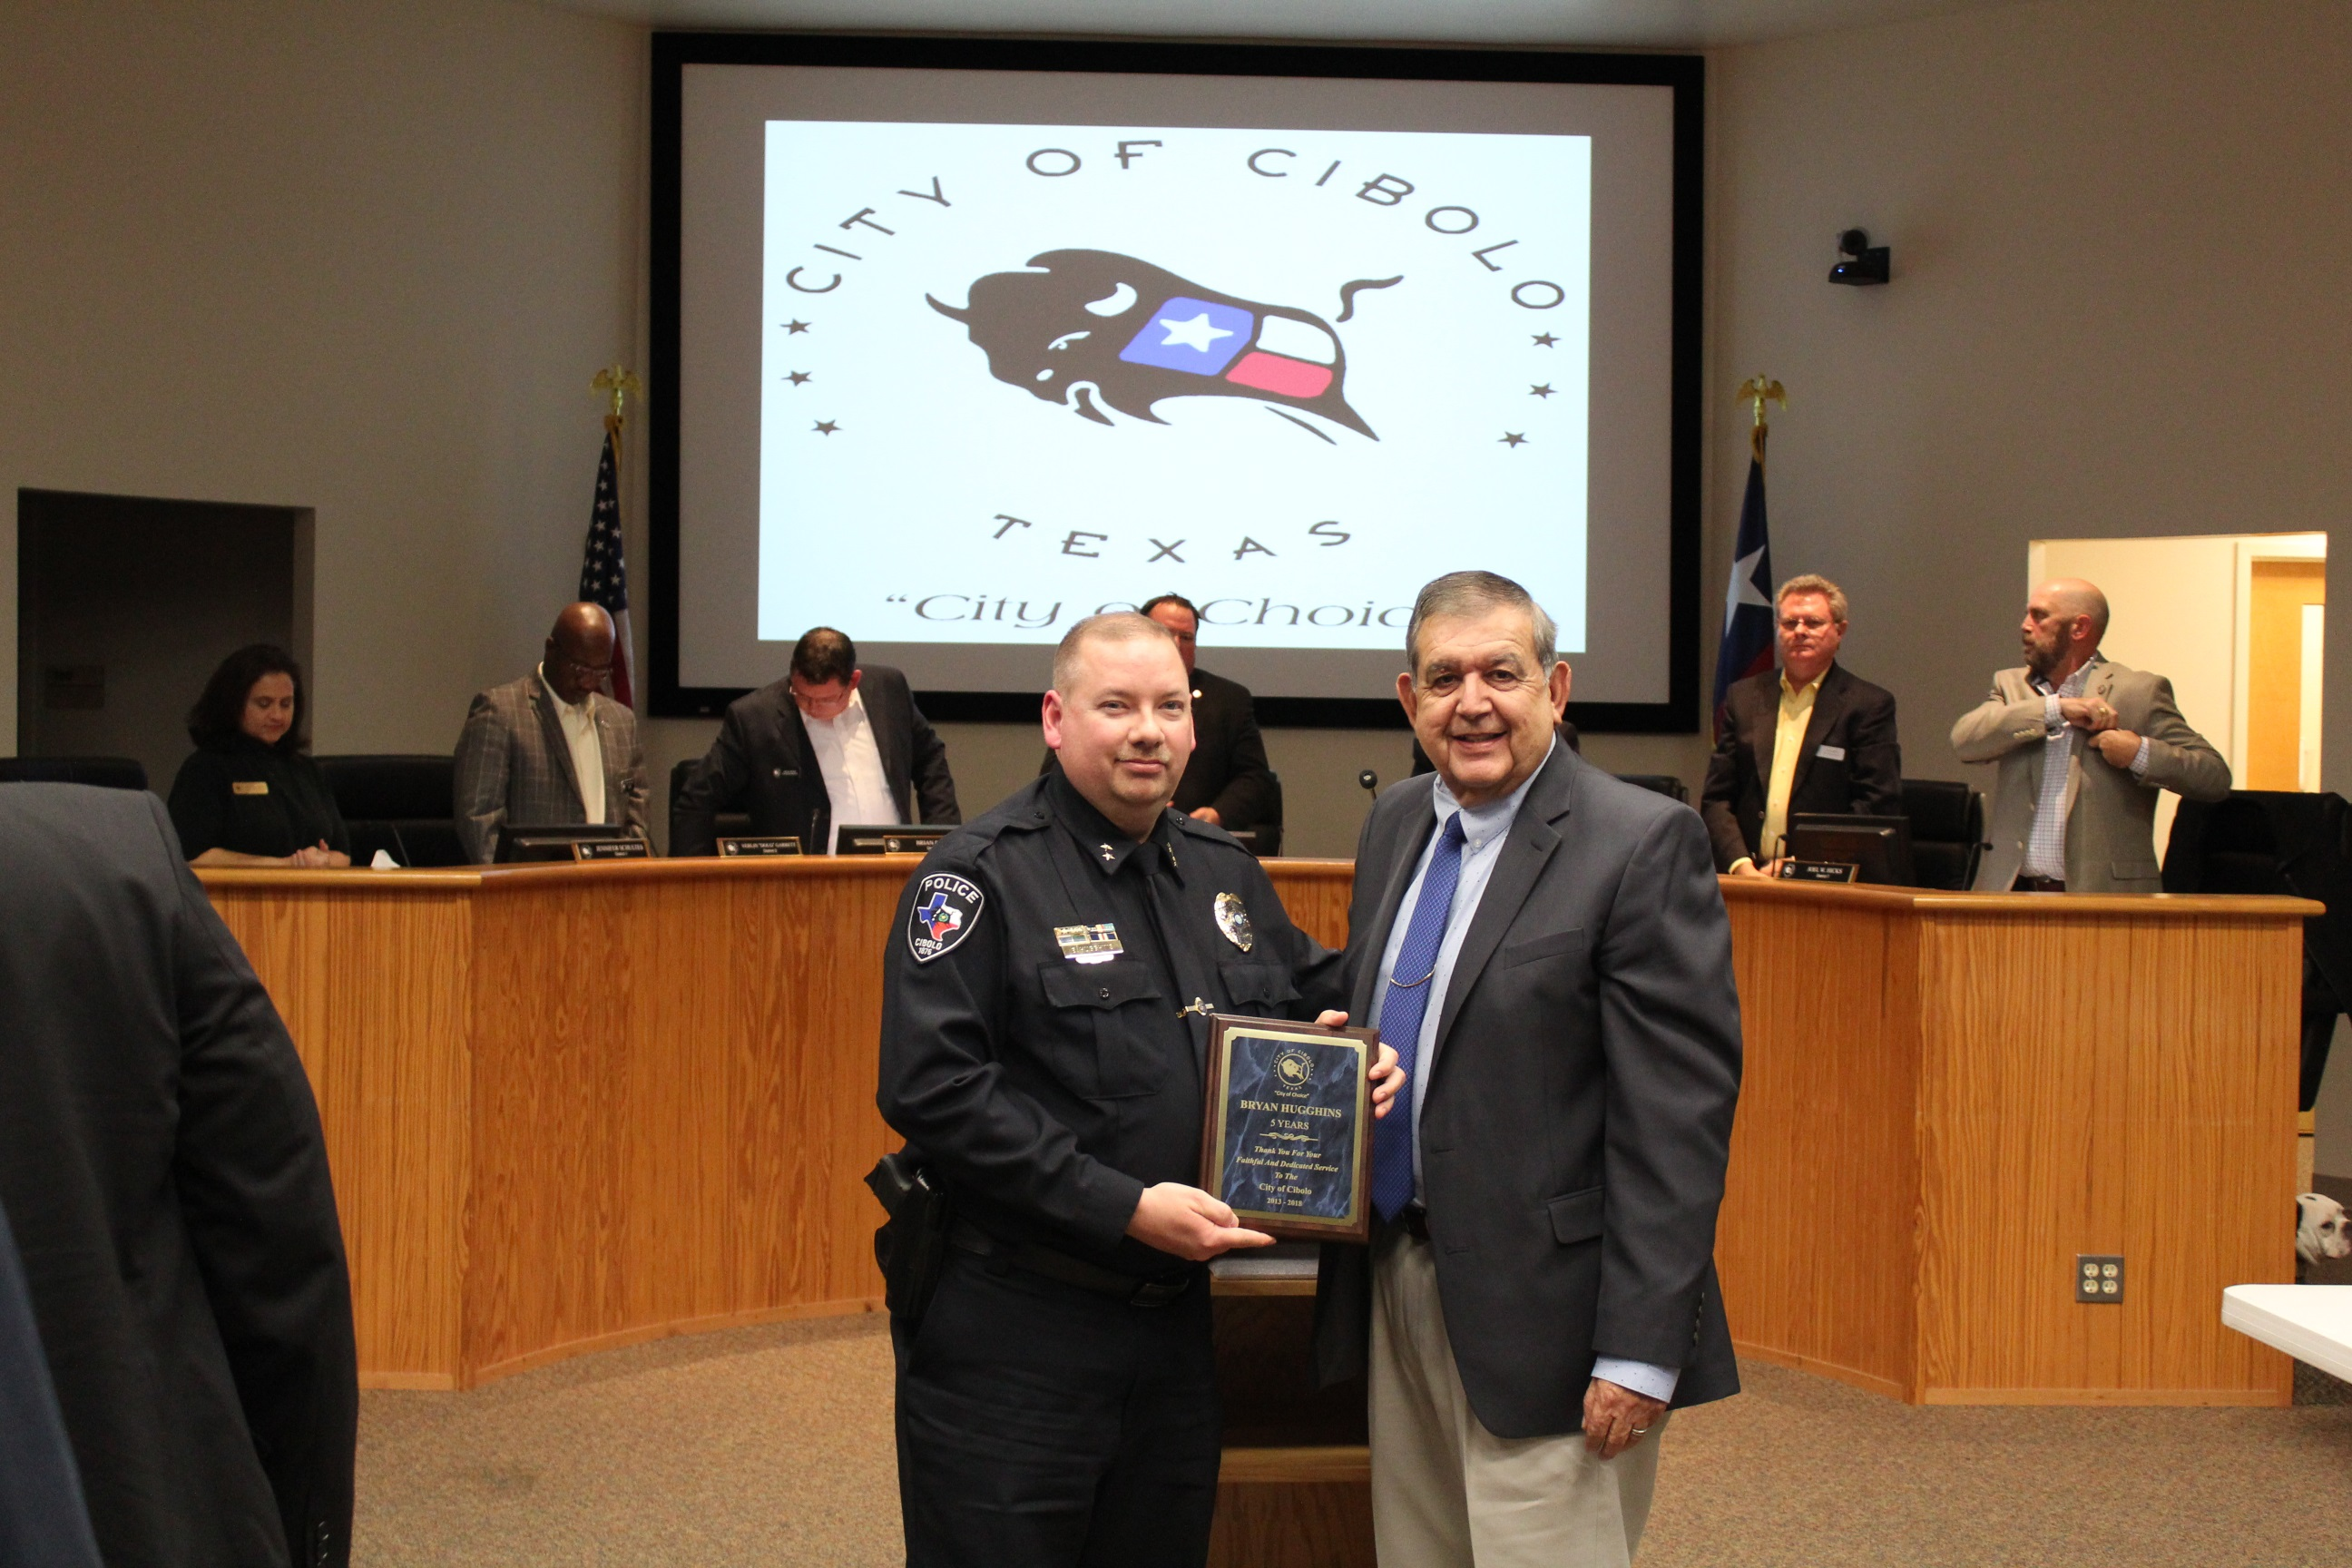 Mr. Herrera Presentation of 5 Years Service Award to Interim Police Chief Bryan Hugghins